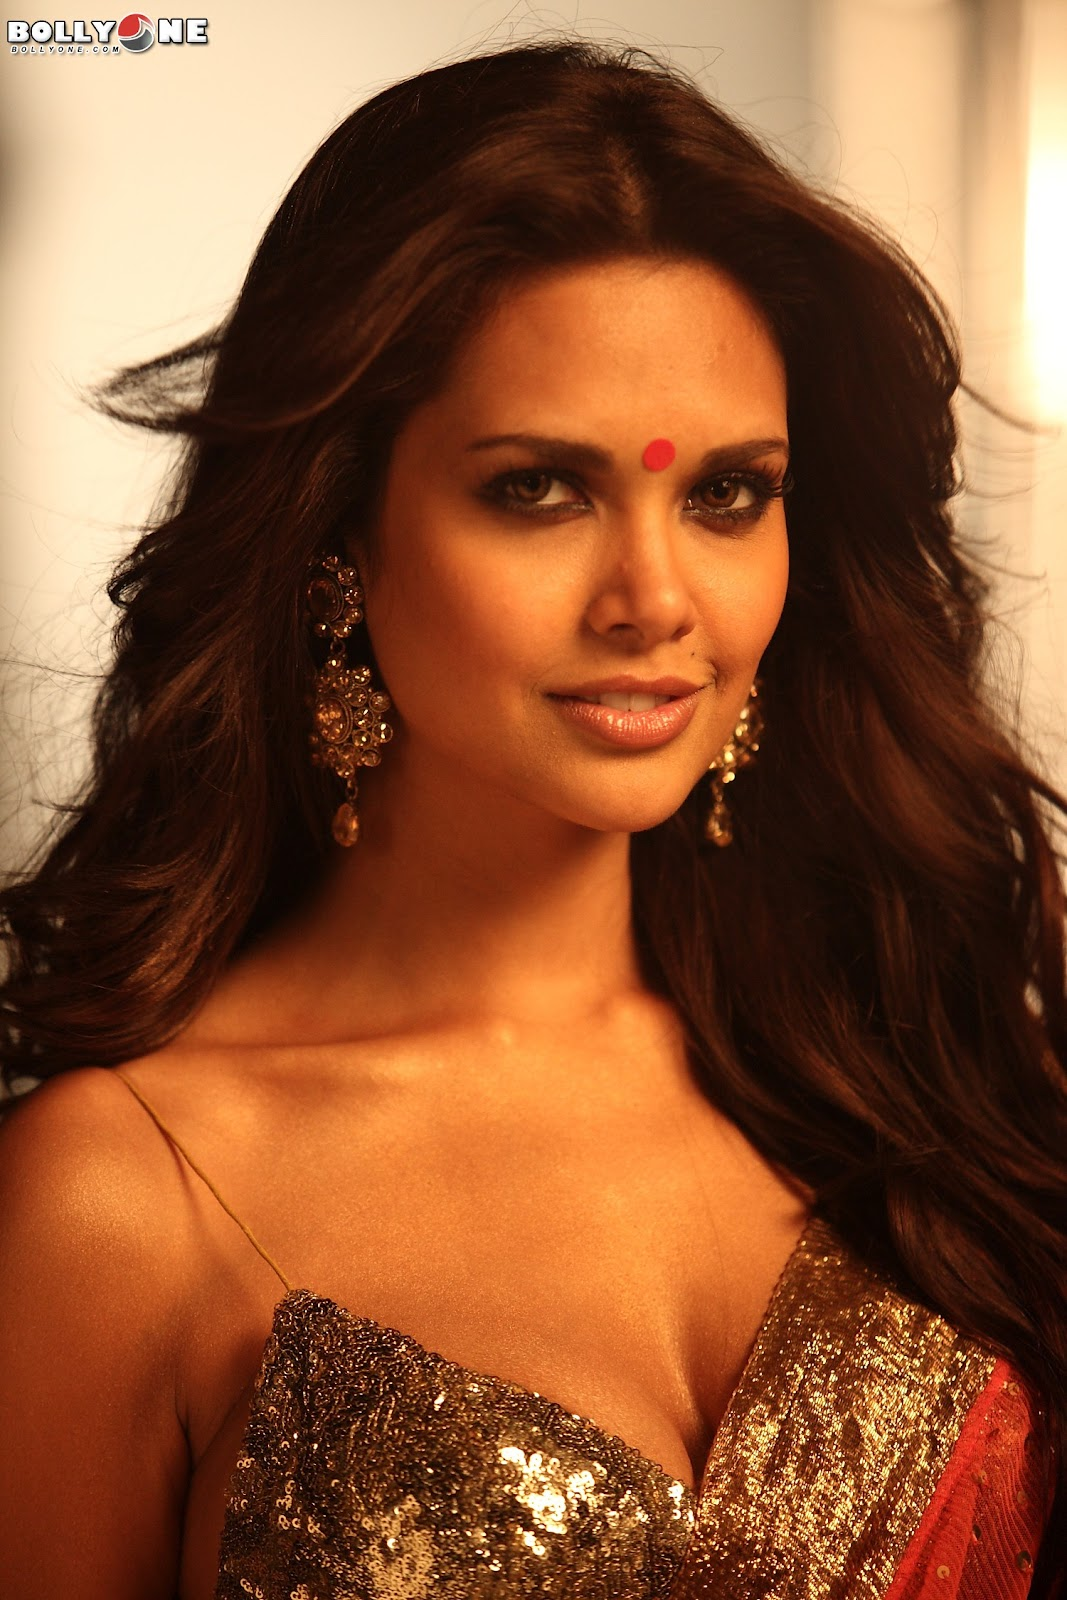 http://3.bp.blogspot.com/-Shu5VbMSA-A/T4NHW_ApPcI/AAAAAAAAScA/twfQle8IVLE/s1600/Esha-Gupta-HOT-Wallpaper-Jannat-2---Esha-Gupta-Wallpapers-Jannat-2---HOT---bollybreak_com_Jannat-2-Movie-Wallpapers-14.jpg